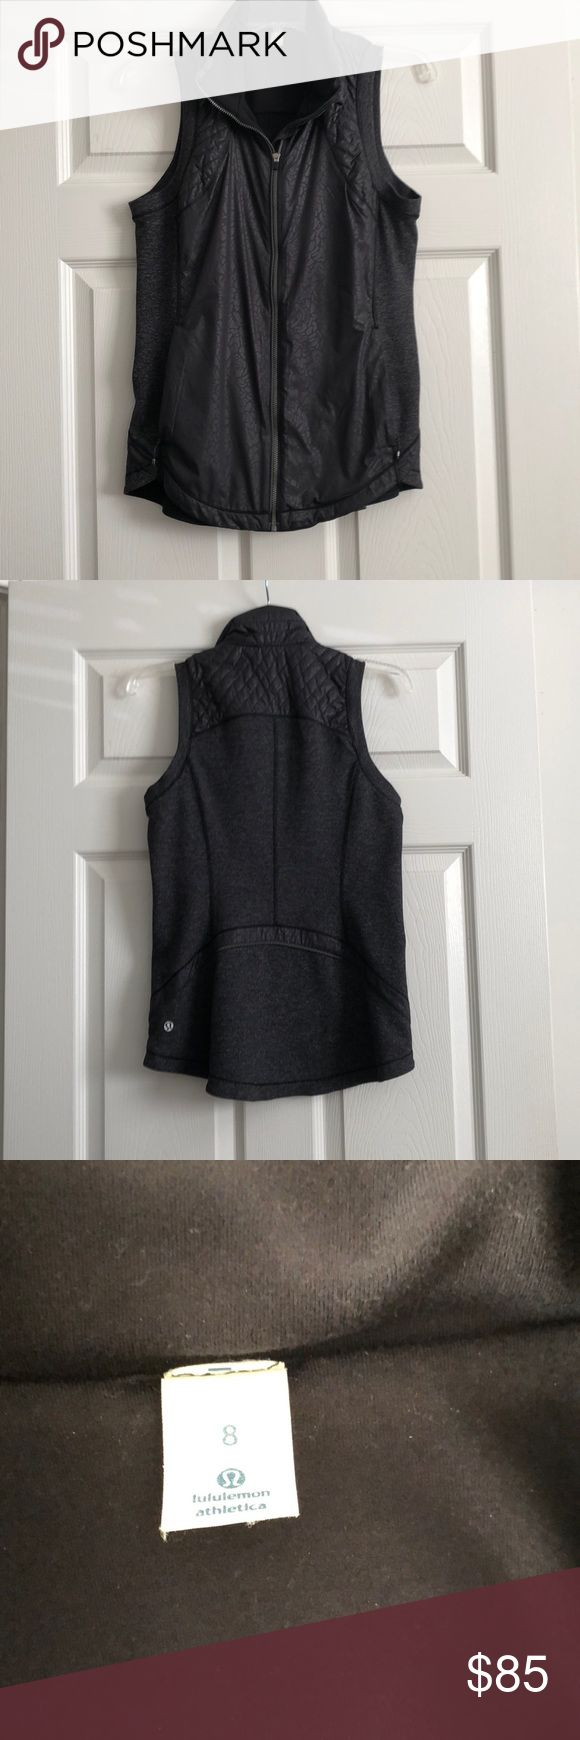 Lululemon vest Lululemon vest size 8. Like new, worn only a couple of times lululemon athletica Jackets & Coats Vests